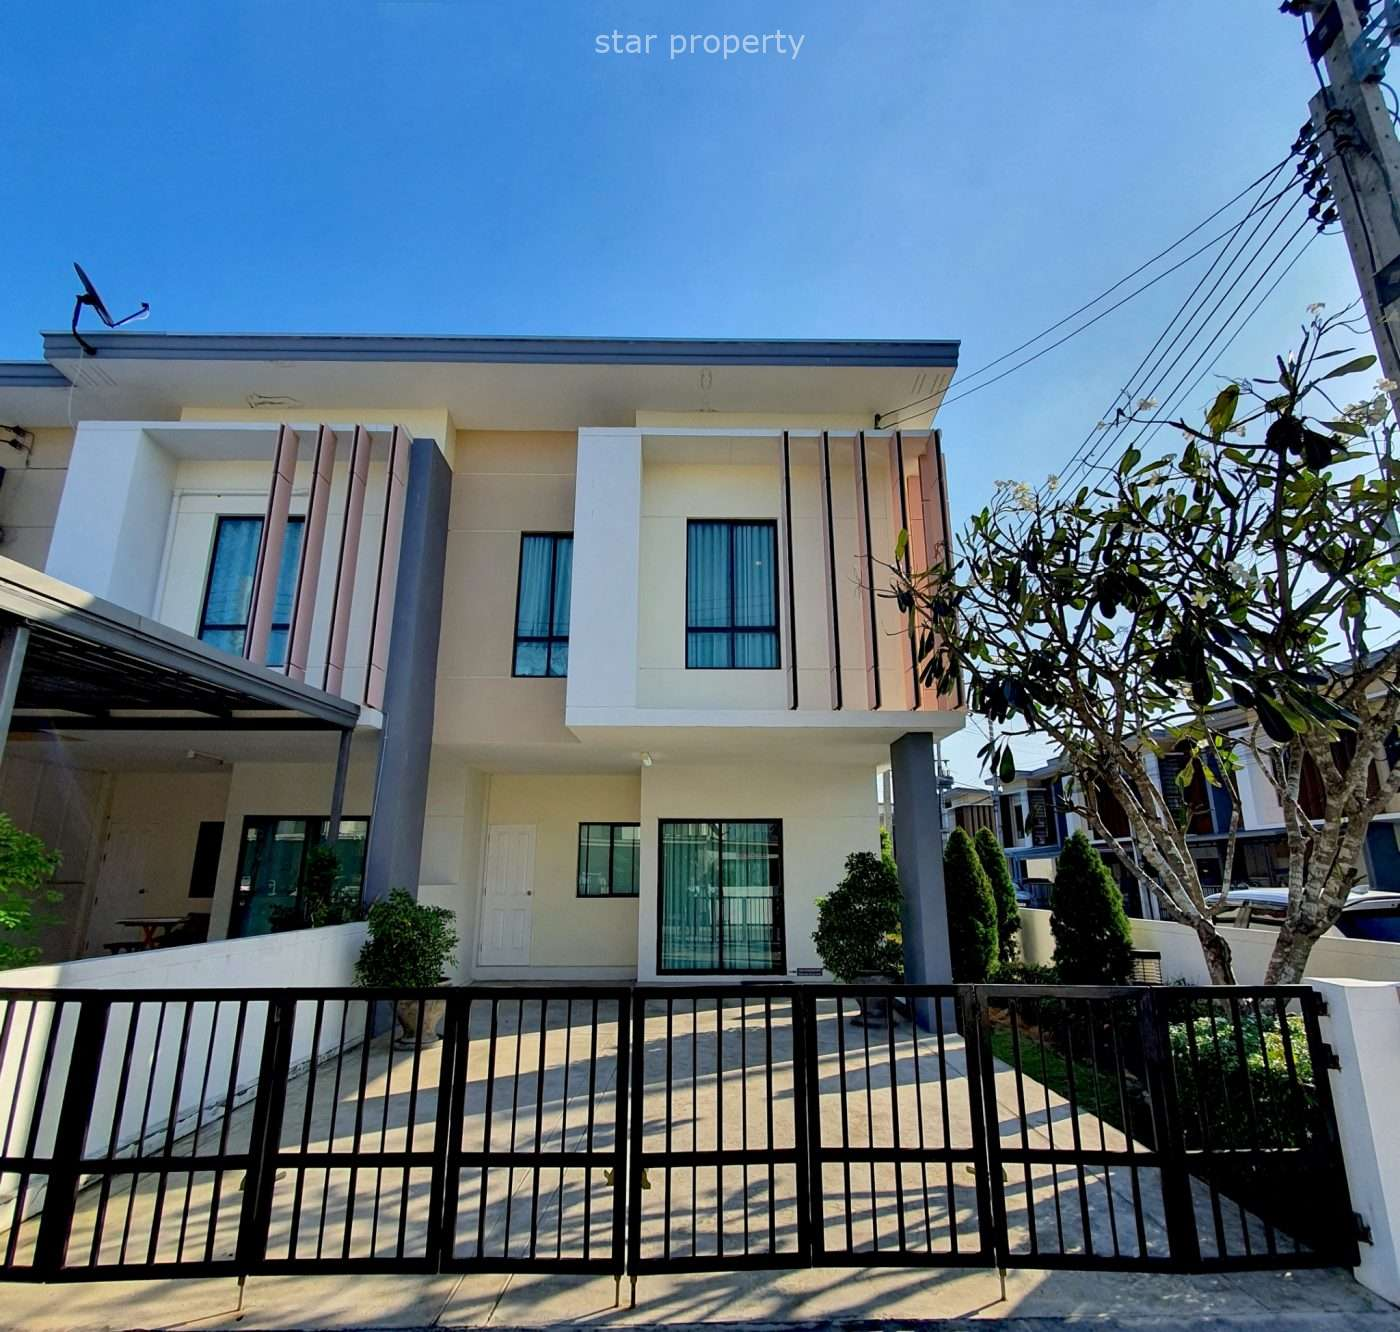 3 bedrooms 2 storey townhome fully furnished